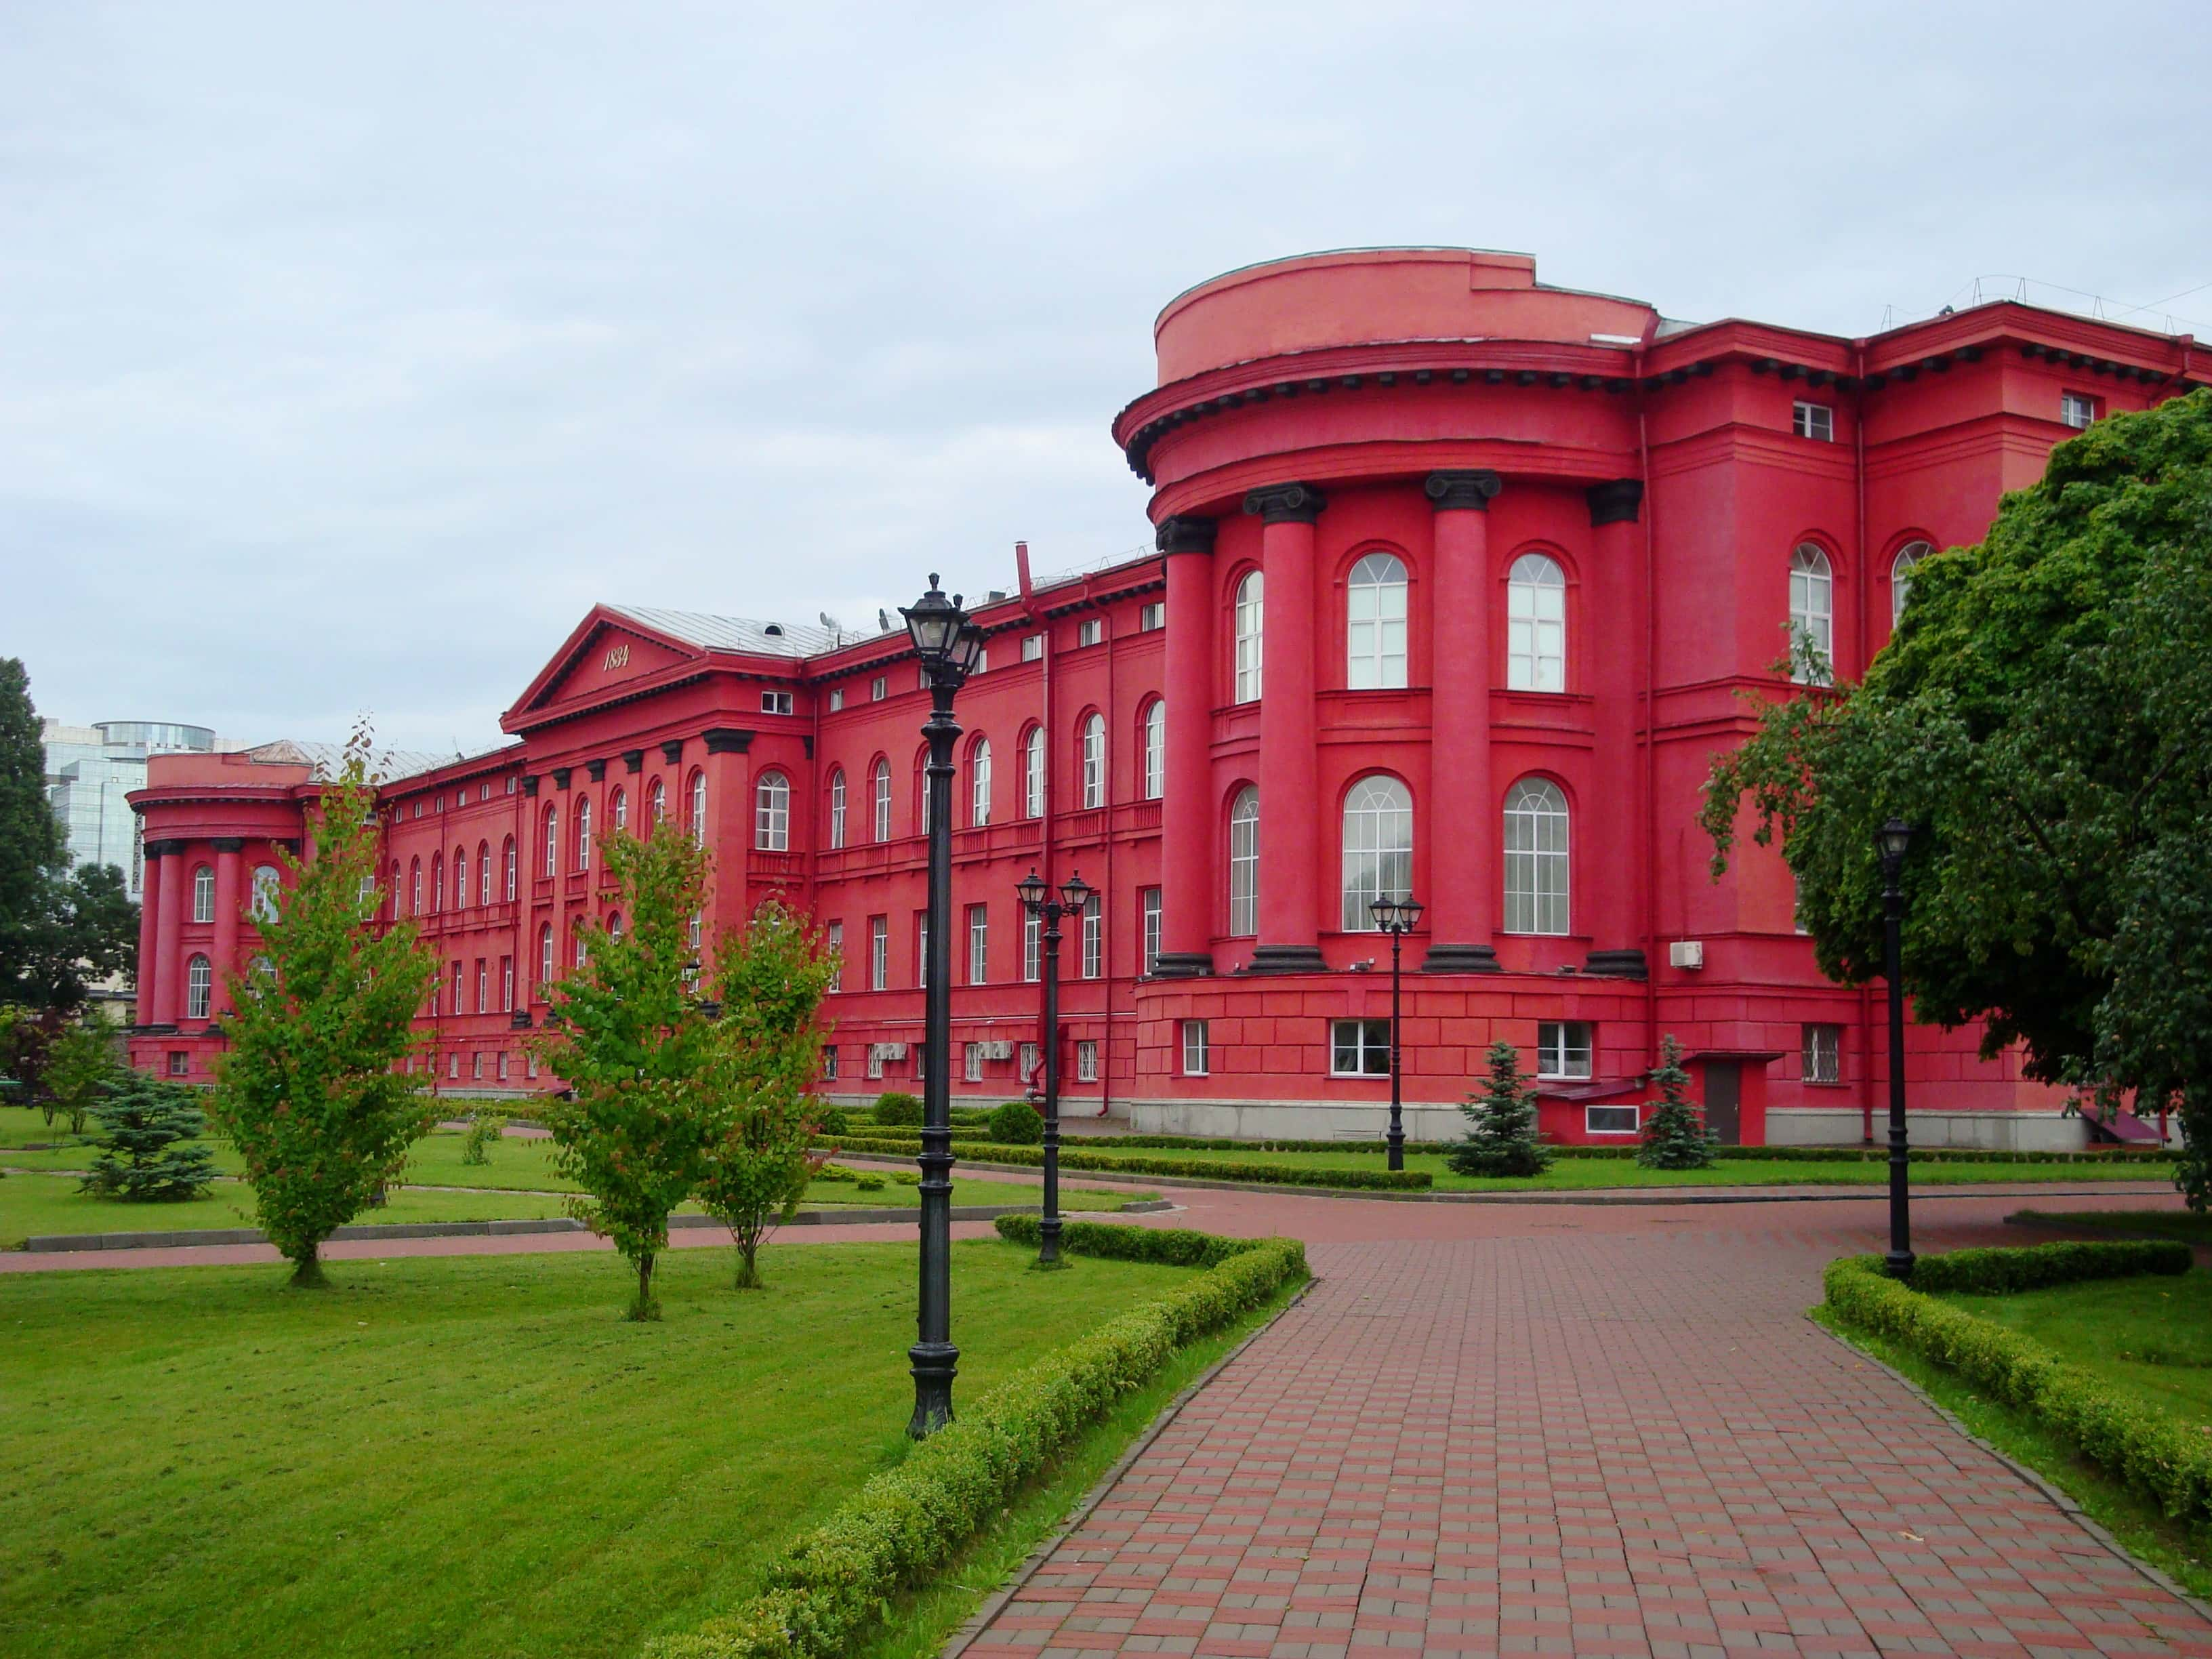 60, Volodymyrska Str. – Taras Shevchenko National University